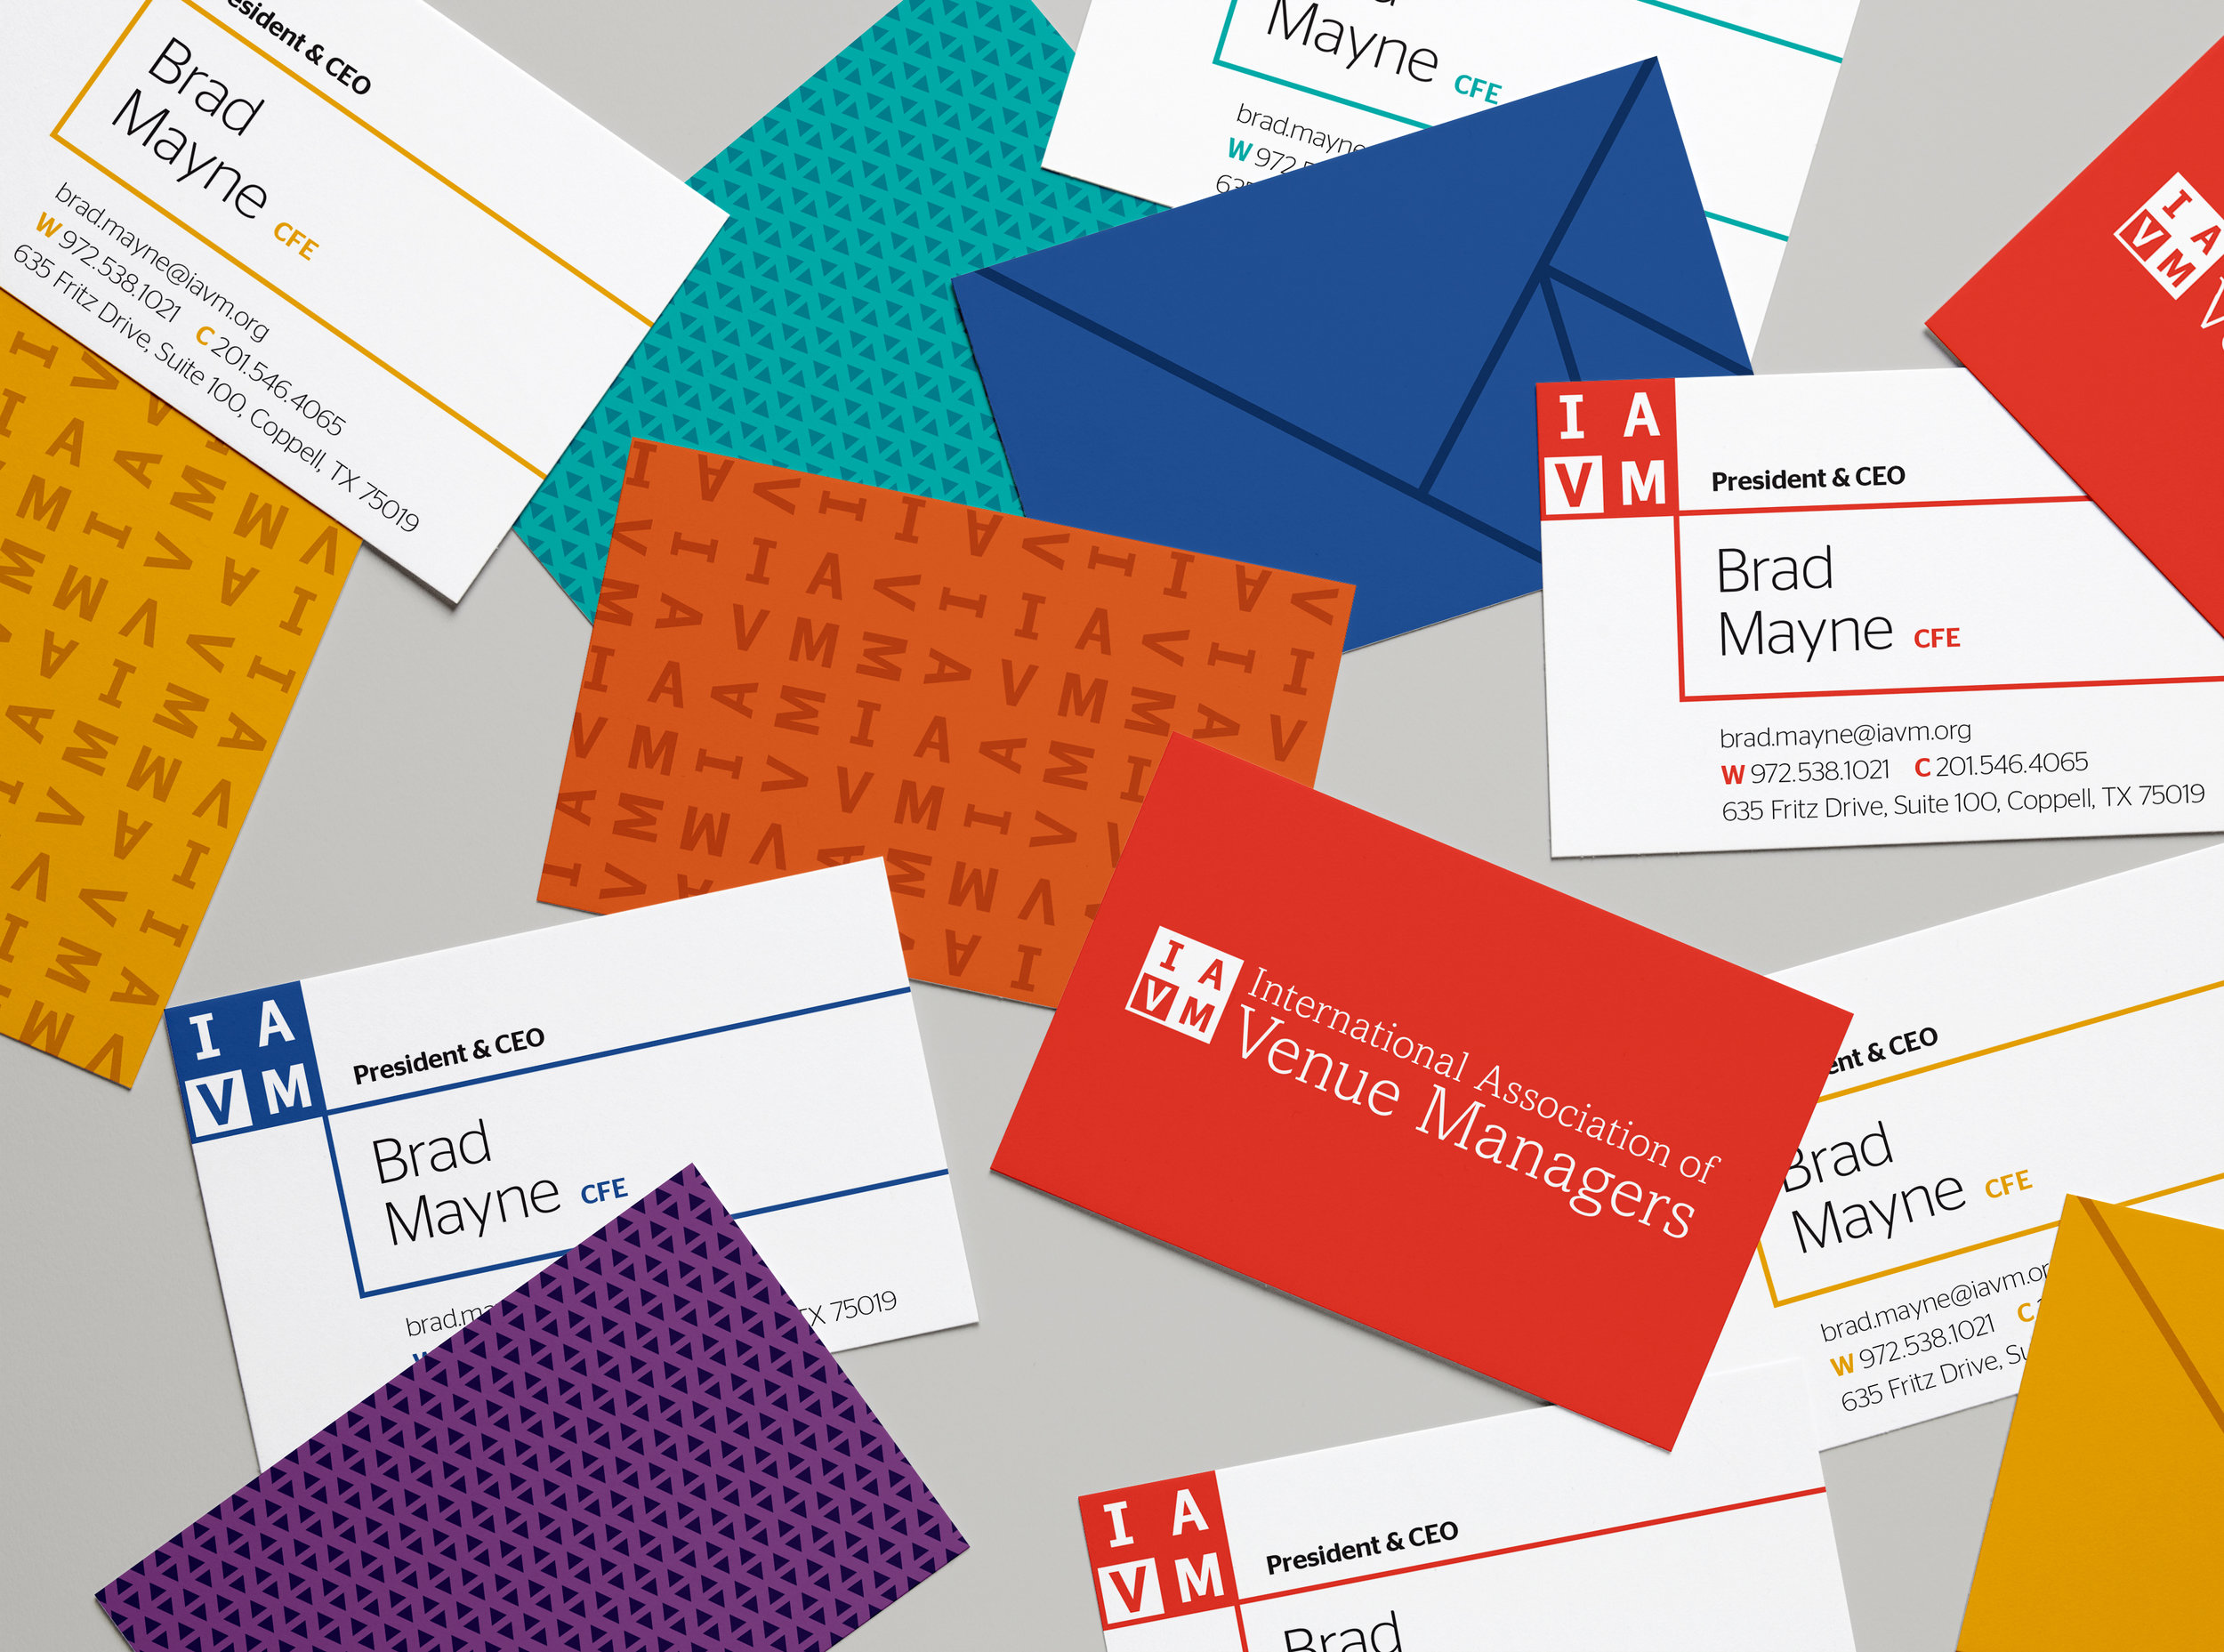 IAVM_Business Cards _01.jpg